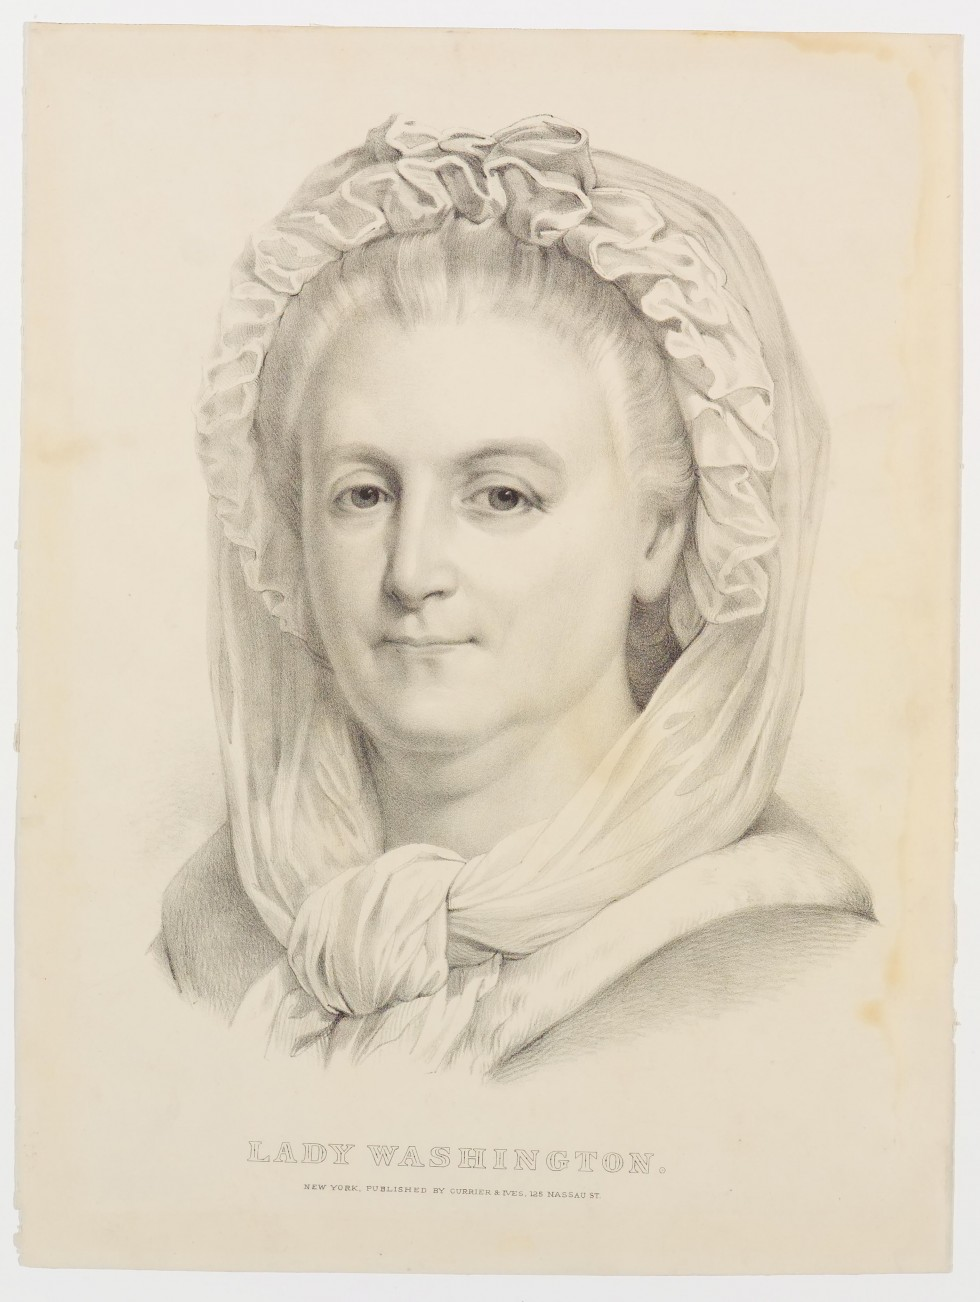 Black and white sketch of shoulder view of older woman with head covered in ruffled scarf and tied at center under neck